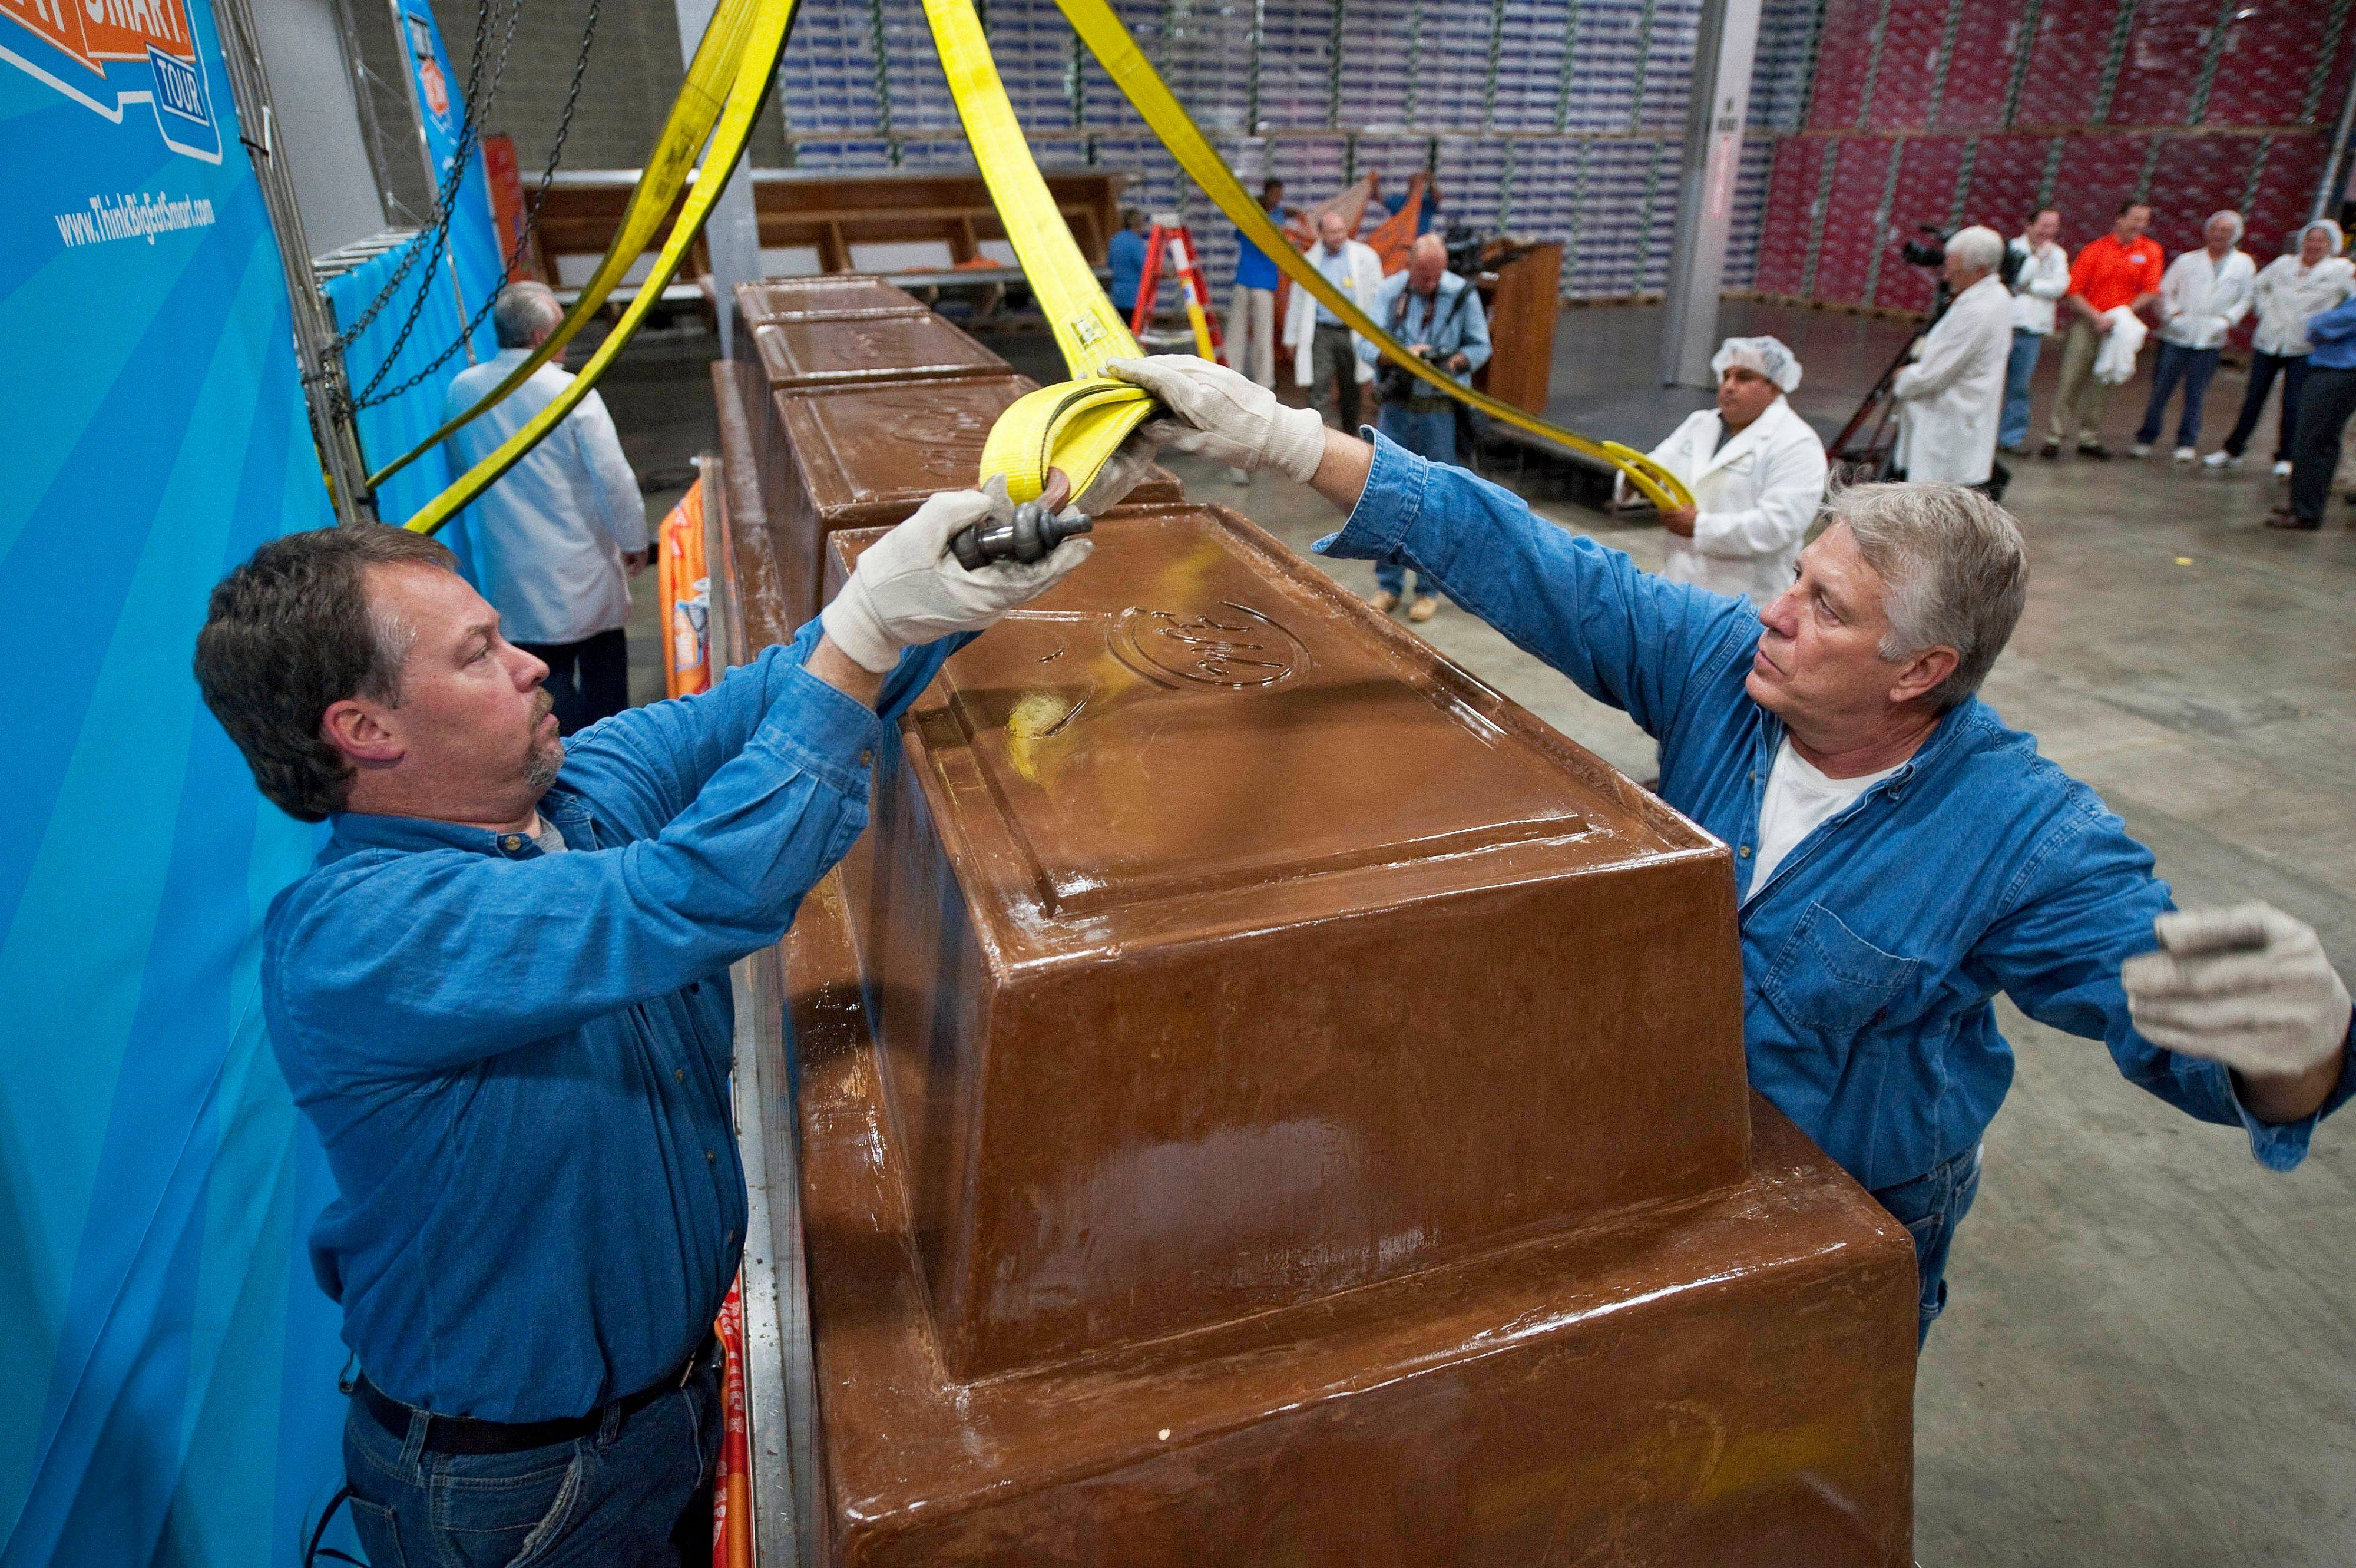 Garry Hine, left, and Gary Wychocki help move a giant chocolate bar to a scale Tuesday in Chicago. The chocolate bar weighs 12,000 pounds and includes 1,200 pounds of almonds, 5,500 pounds of sugar, 2,000 pounds of milk powder, 1,700 pounds of cocoa butter and 1,400 pounds of chocolate liquor.